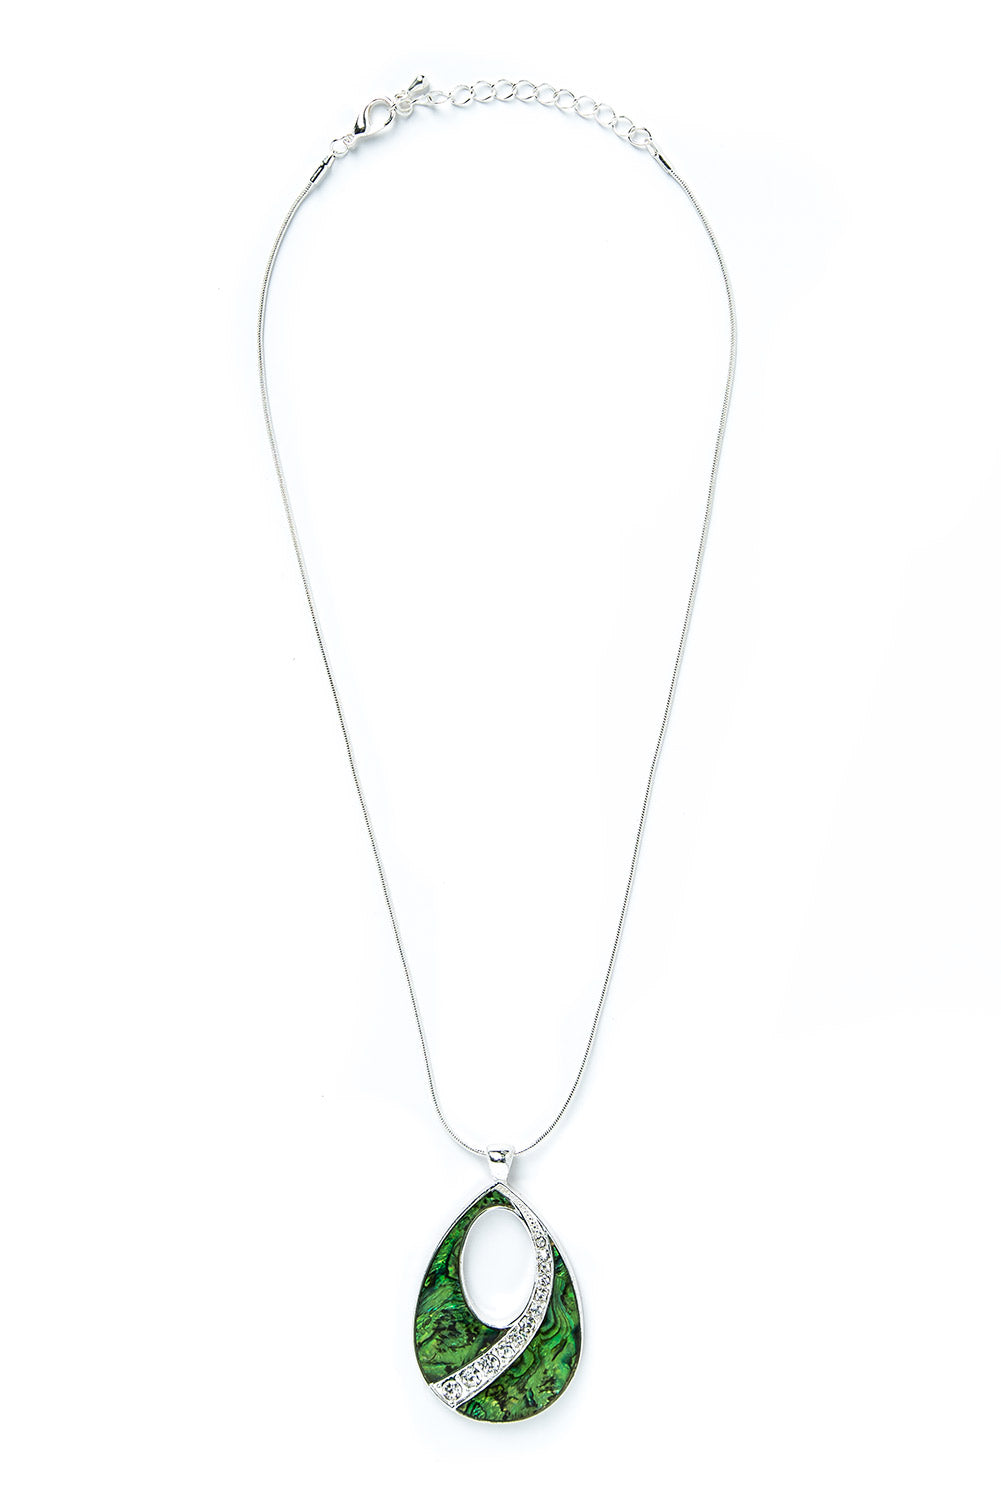 Type 4 Emerald City Necklace